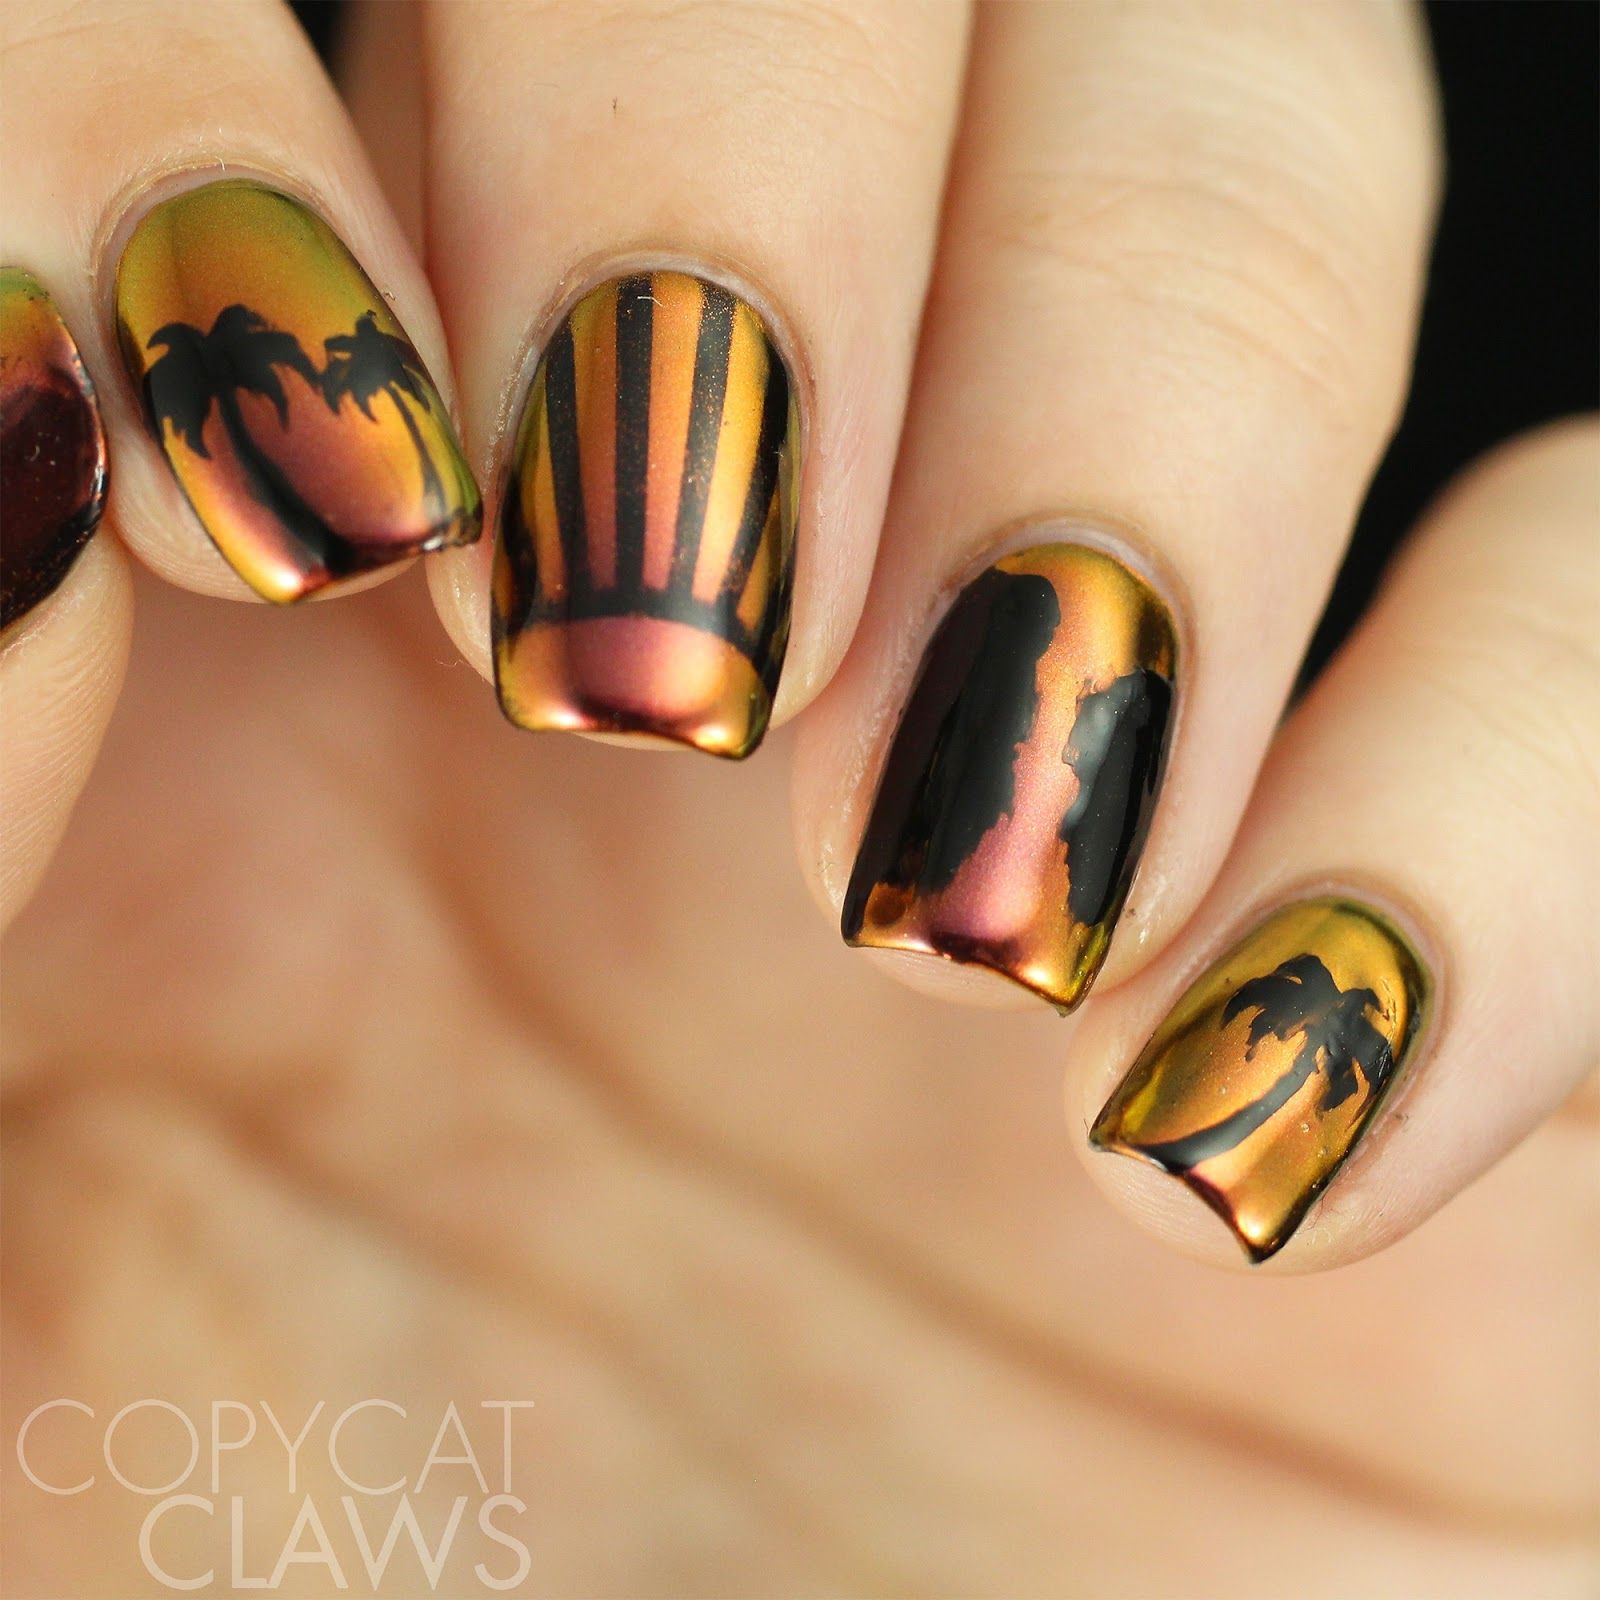 Copycat Claws 26 Great Nail Art Ideas Going On Holiday